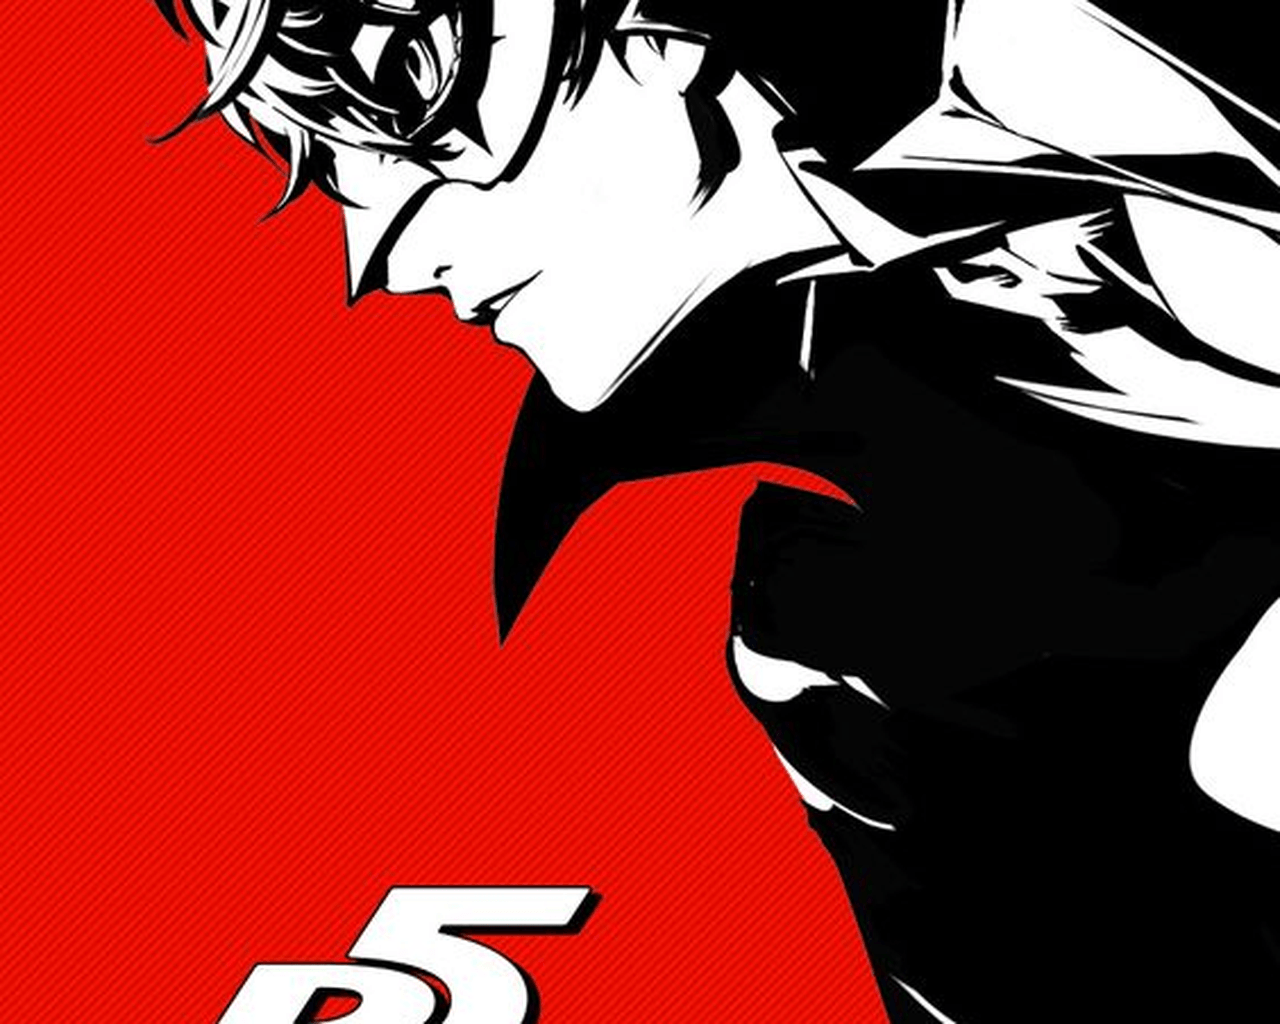 Akira 1280x1024 Wallpapers Top Free Akira 1280x1024 Backgrounds